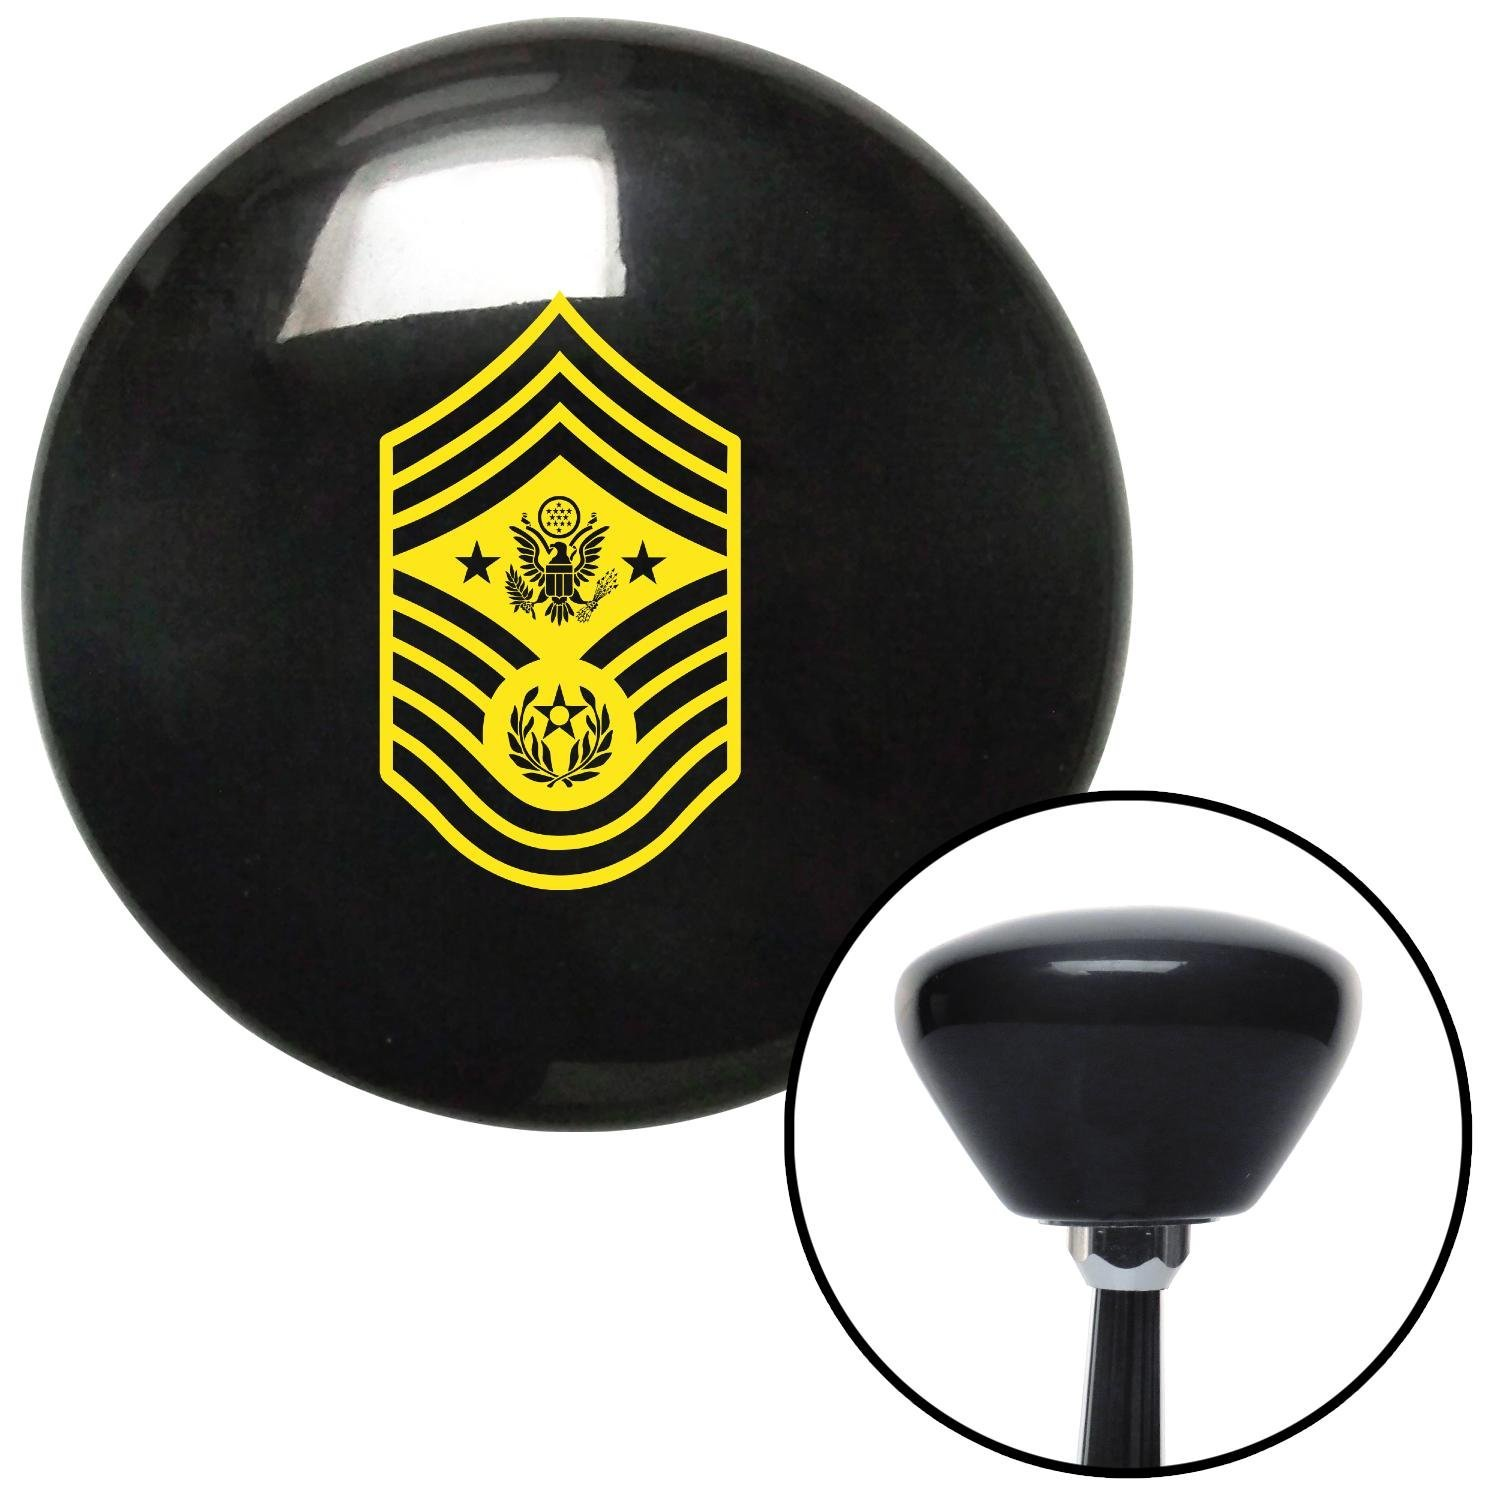 American Shifter 146346 Black Retro Shift Knob with M16 x 1.5 Insert Yellow Chief Master Sergeant of The Air Force